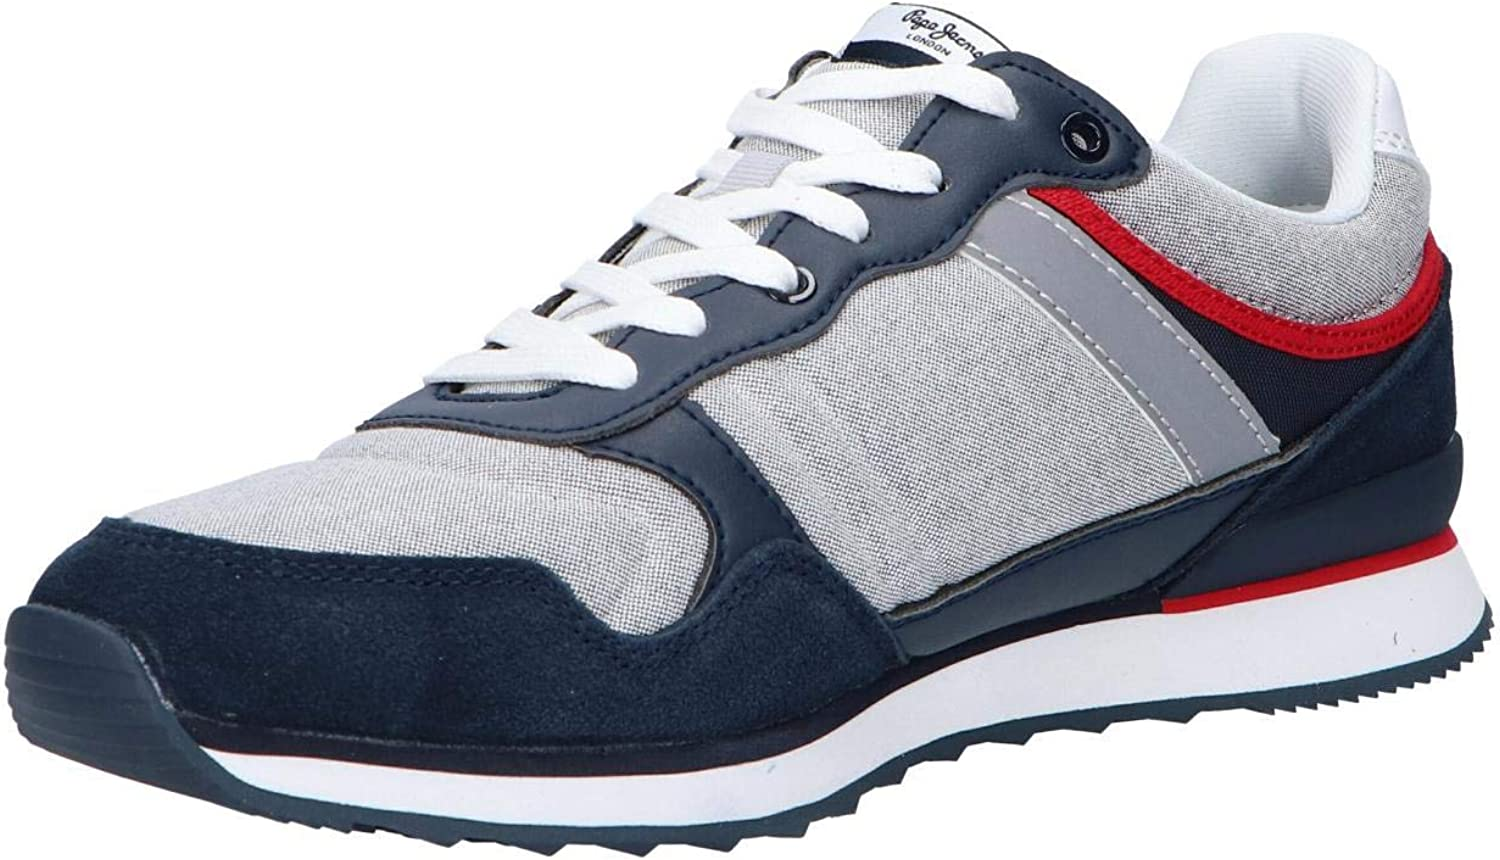 Pepe Jeans Cross 4 PMS 30606 Marino Chaussures pour homme Bleu